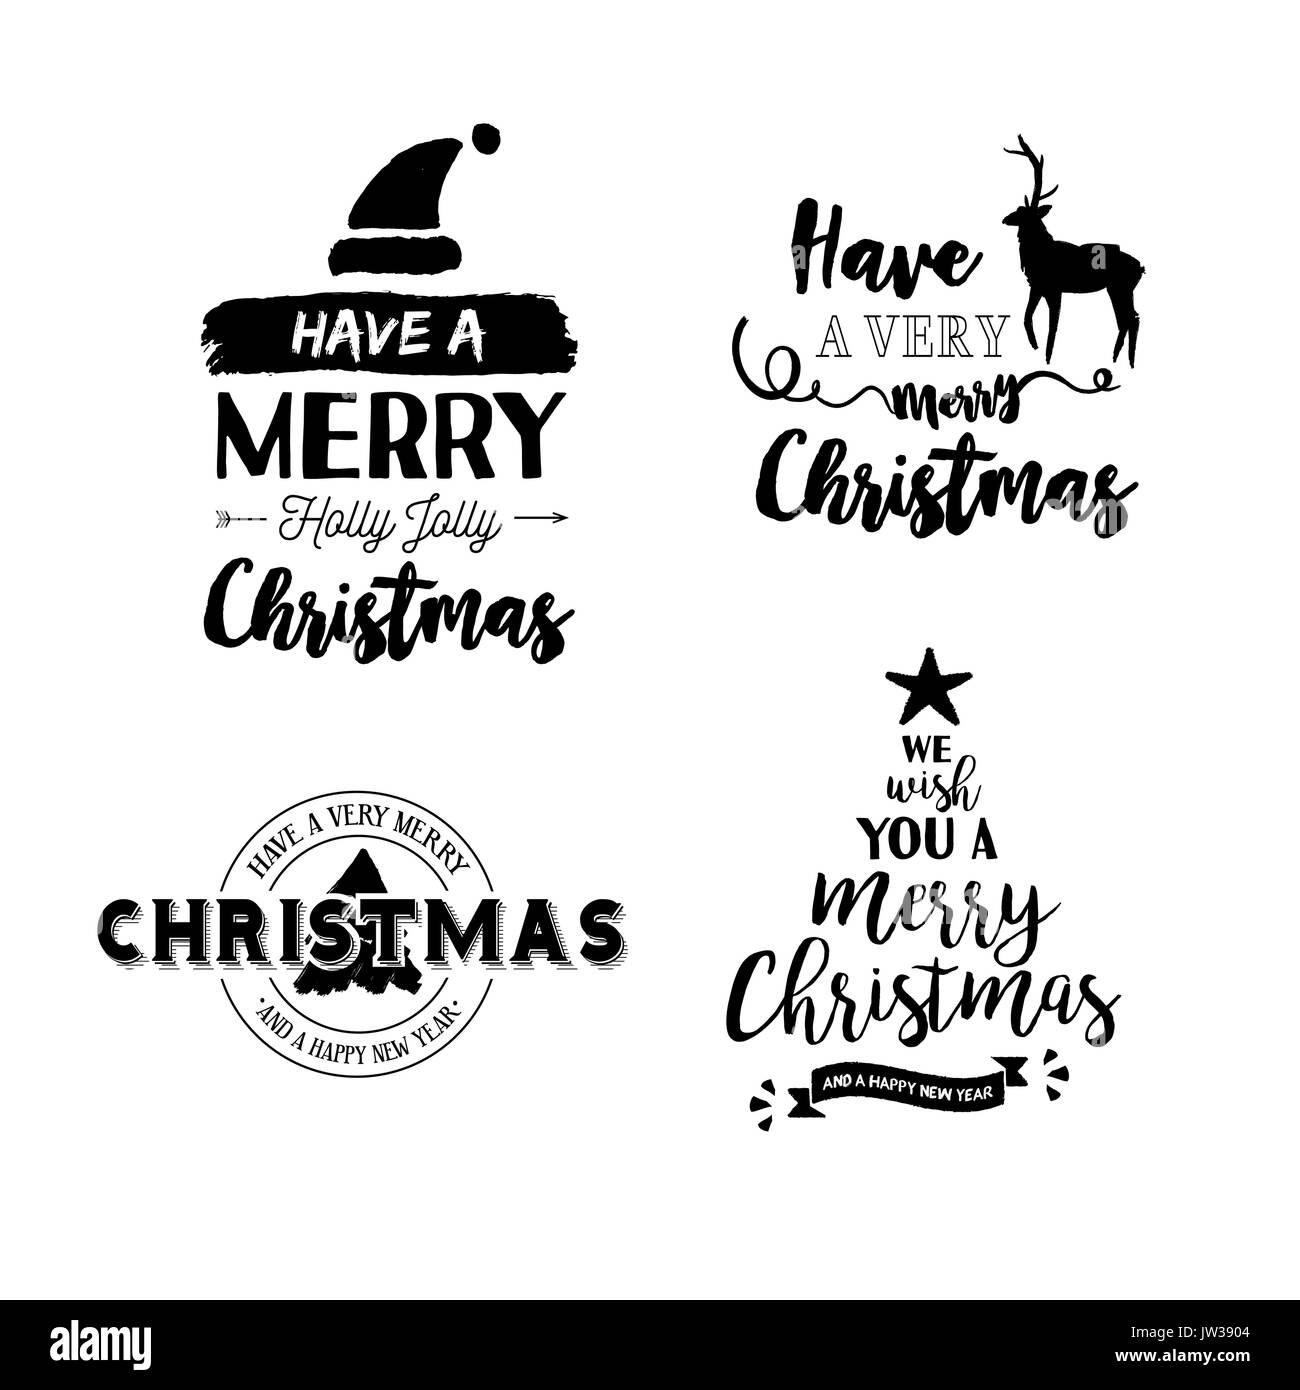 merry christmas text quote set calligraphy lettering design for stock vector image art alamy https www alamy com merry christmas text quote set calligraphy lettering design for holiday image153122260 html